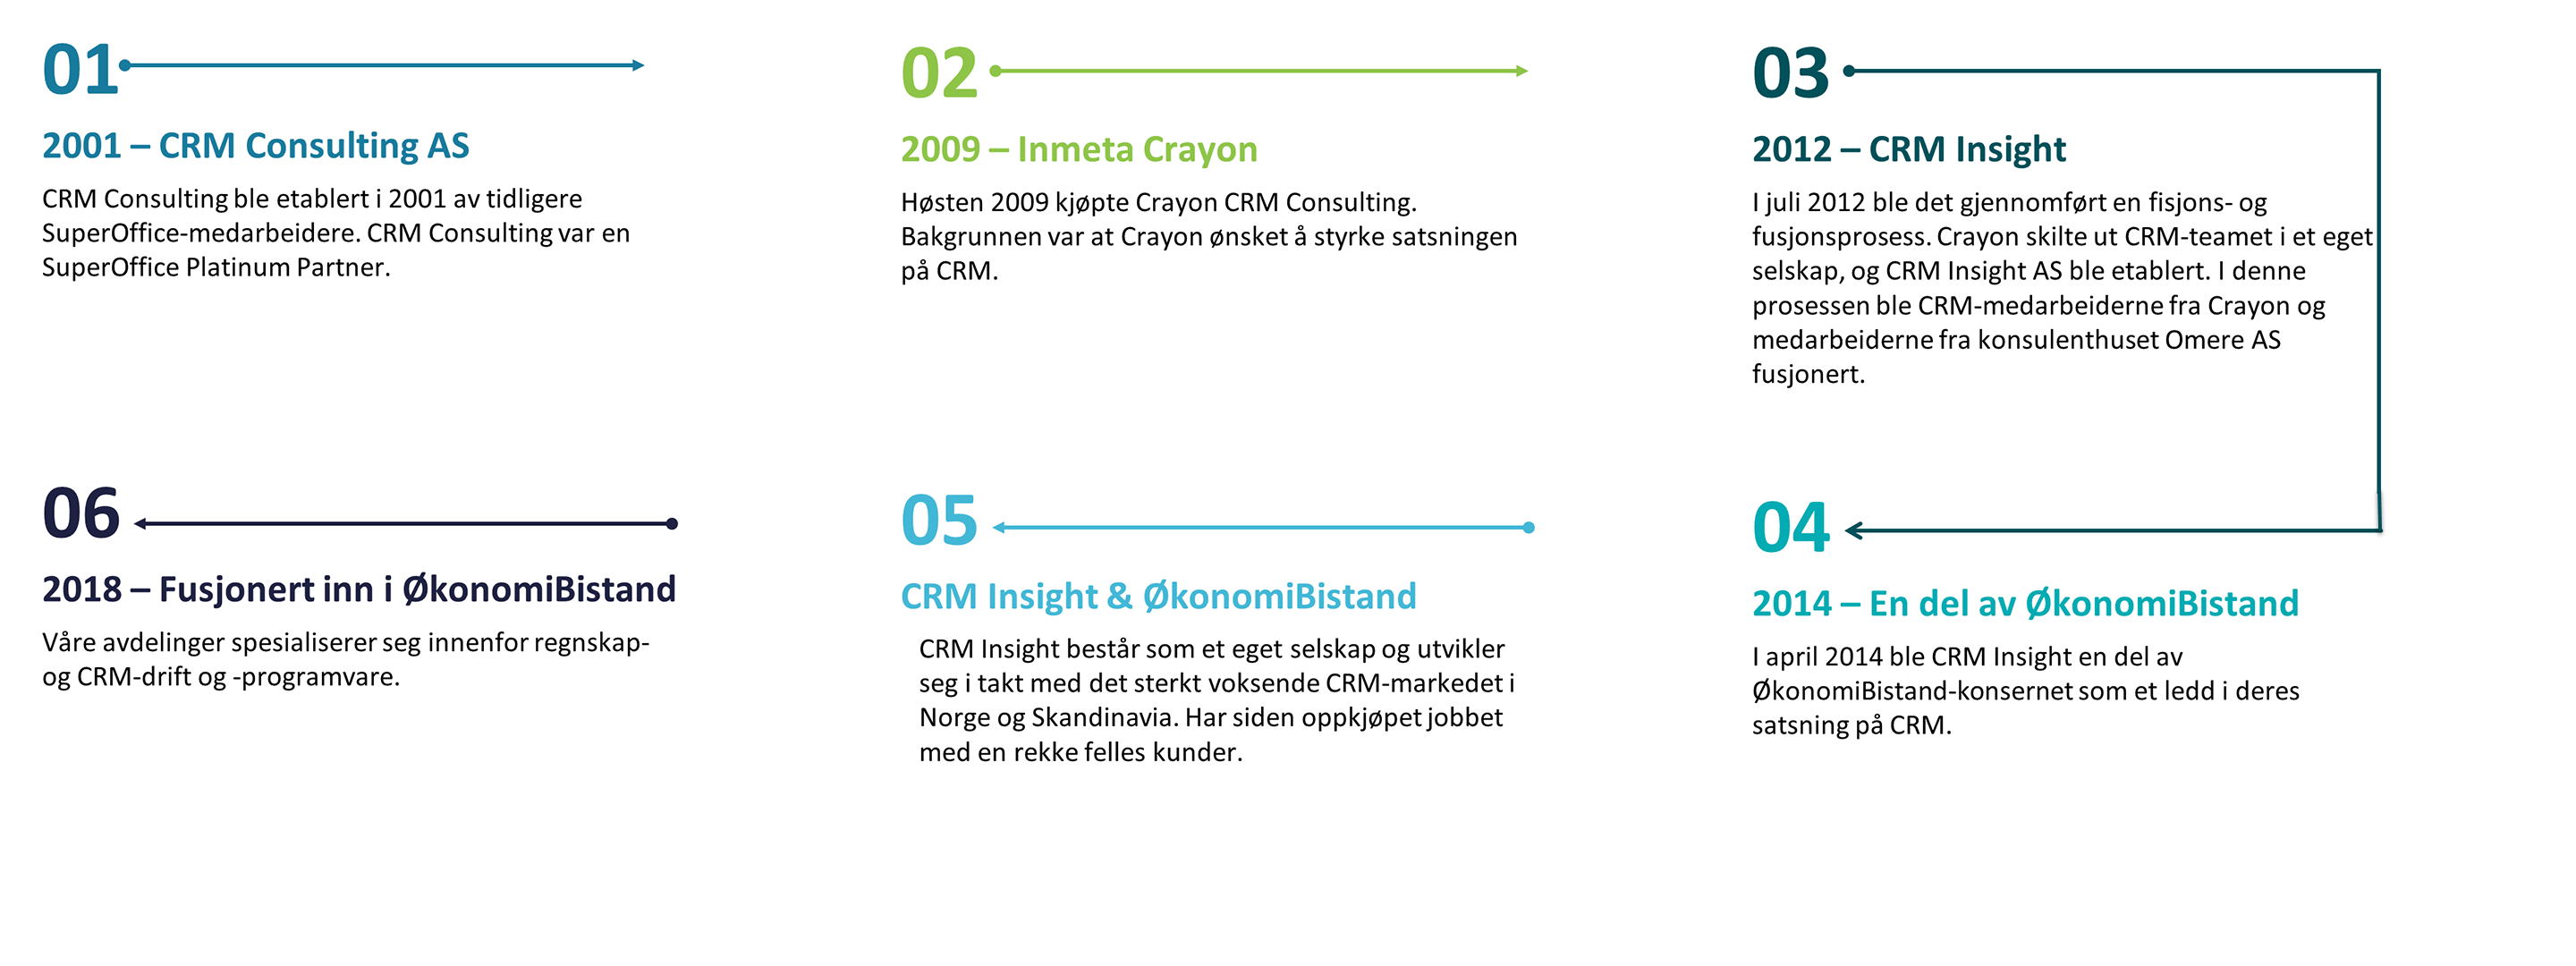 CRM Insights historie